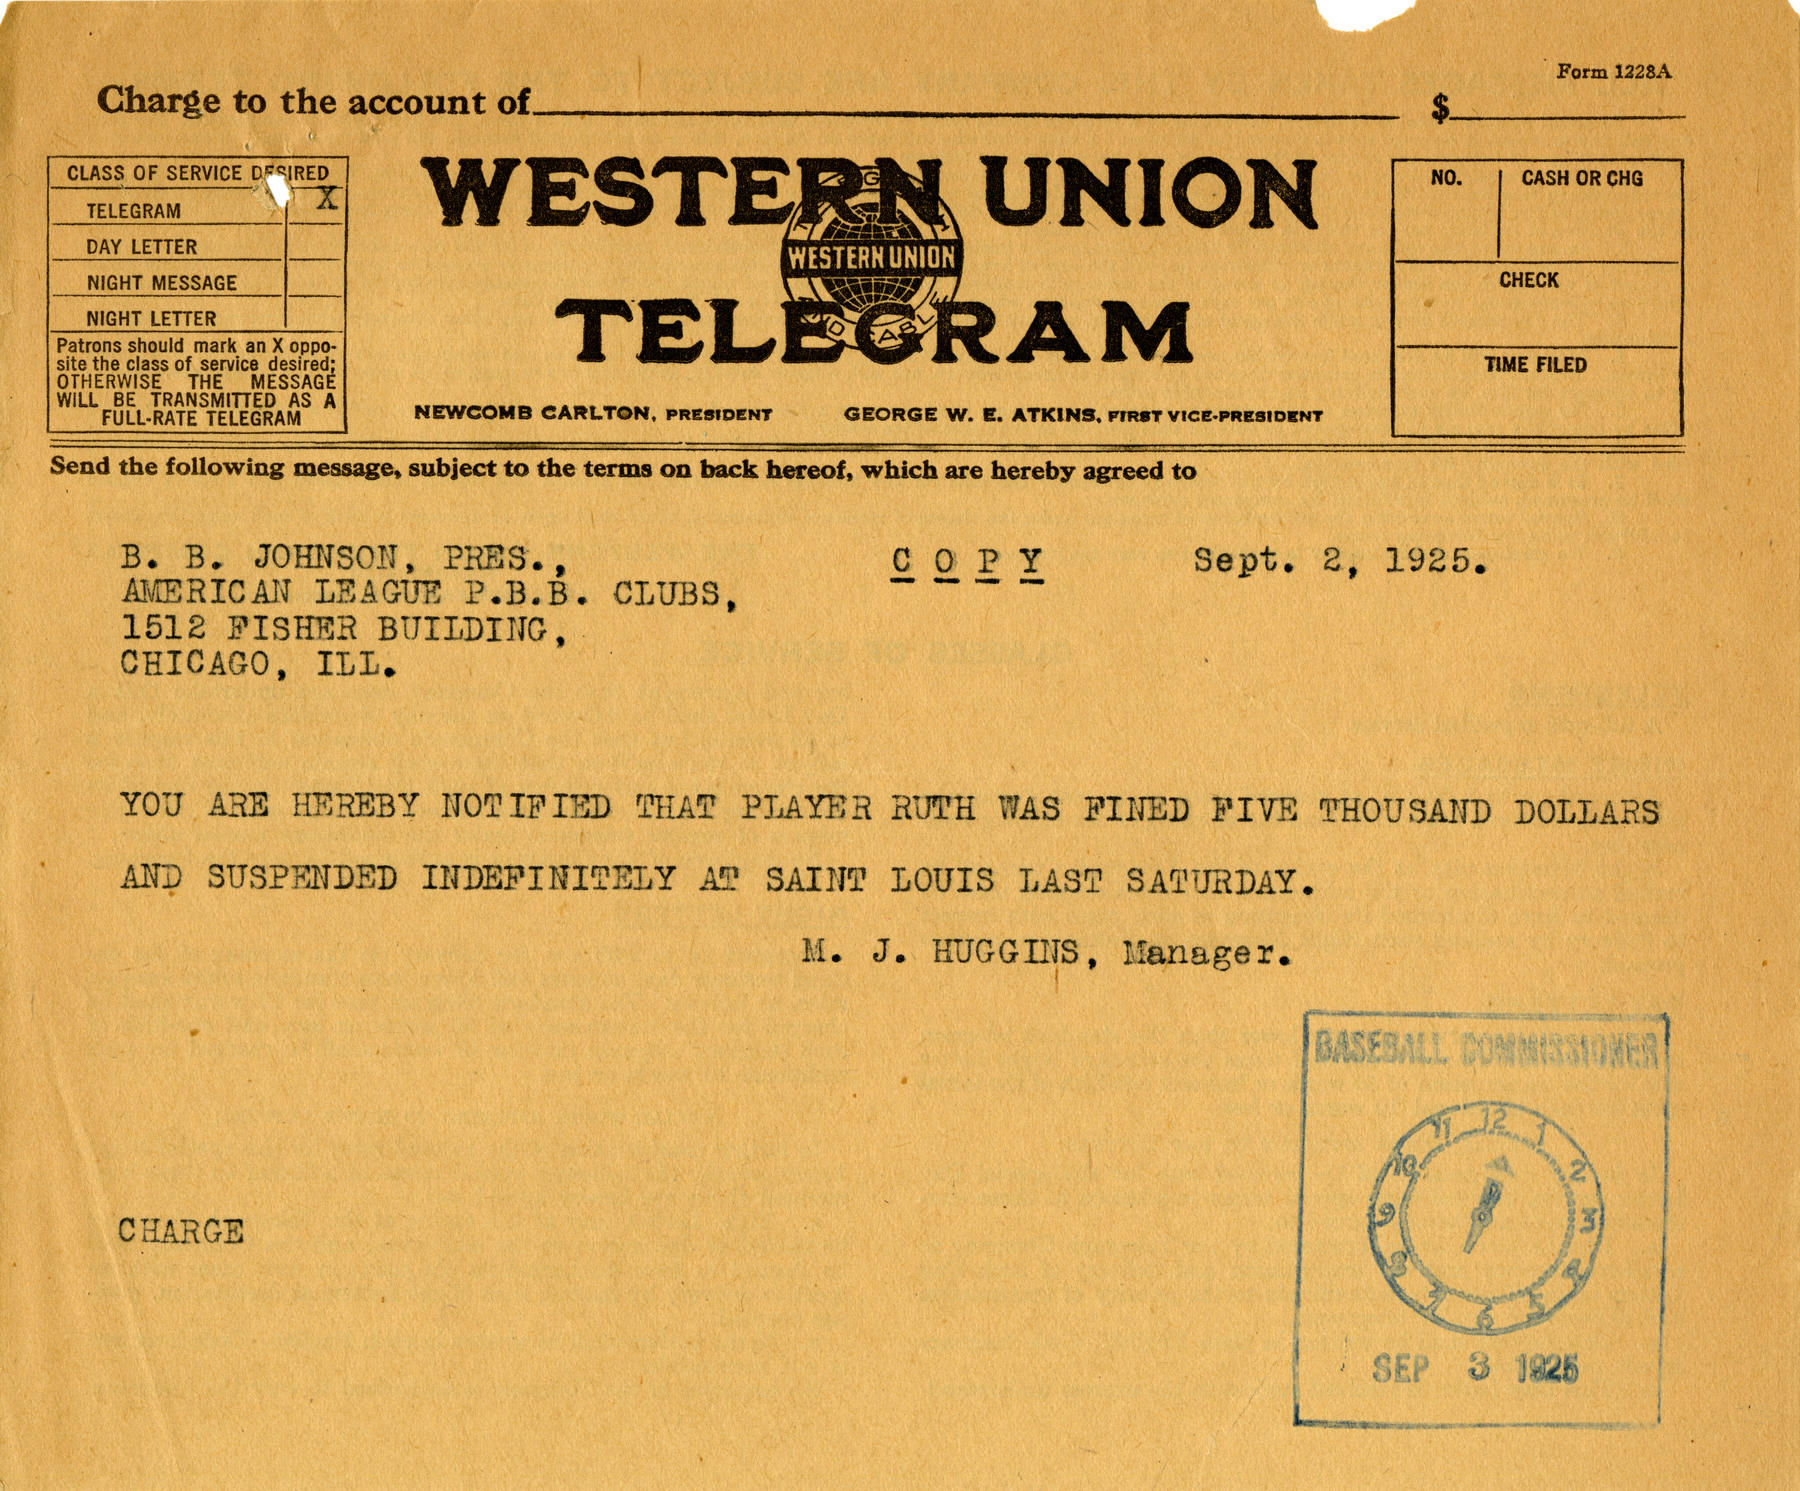 Telegram sent by Miller Huggins to Ban Johnson regarding Babe Ruth's $5,000 fine. BL-439-2008 (National Baseball Hall of Fame Library)